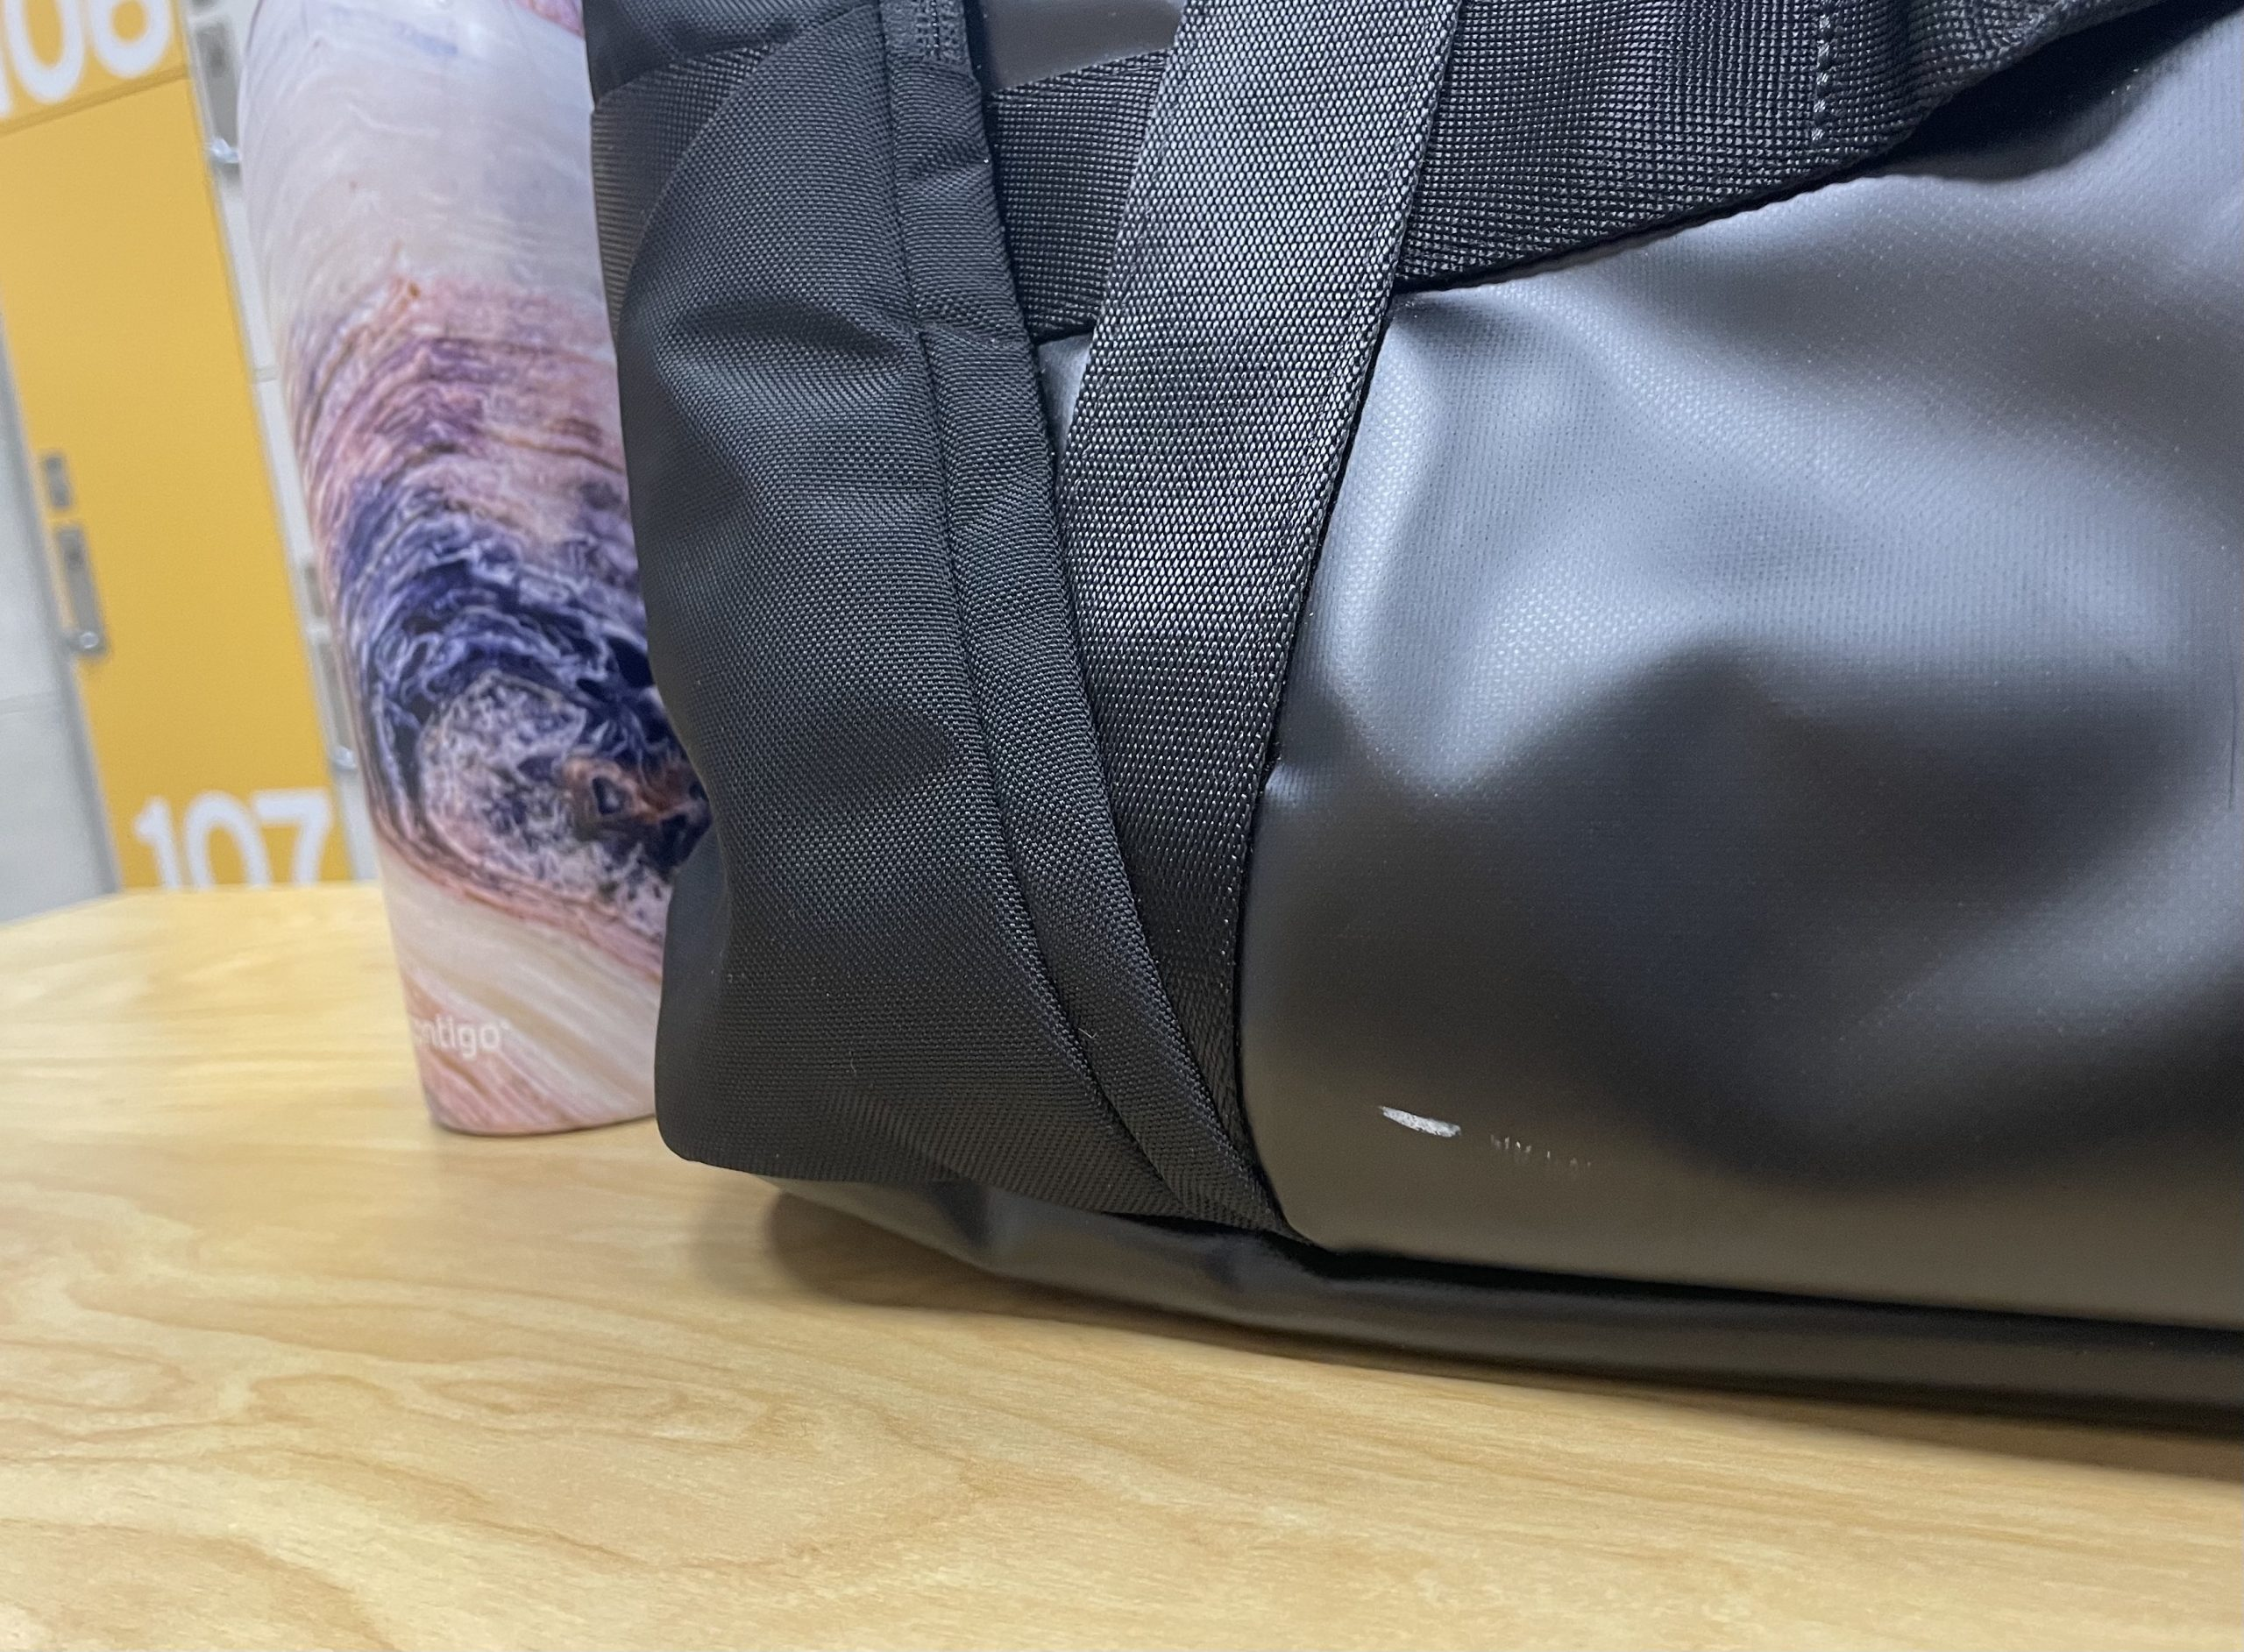 Mysterious Scratch on the lululemon More Miles Duffle